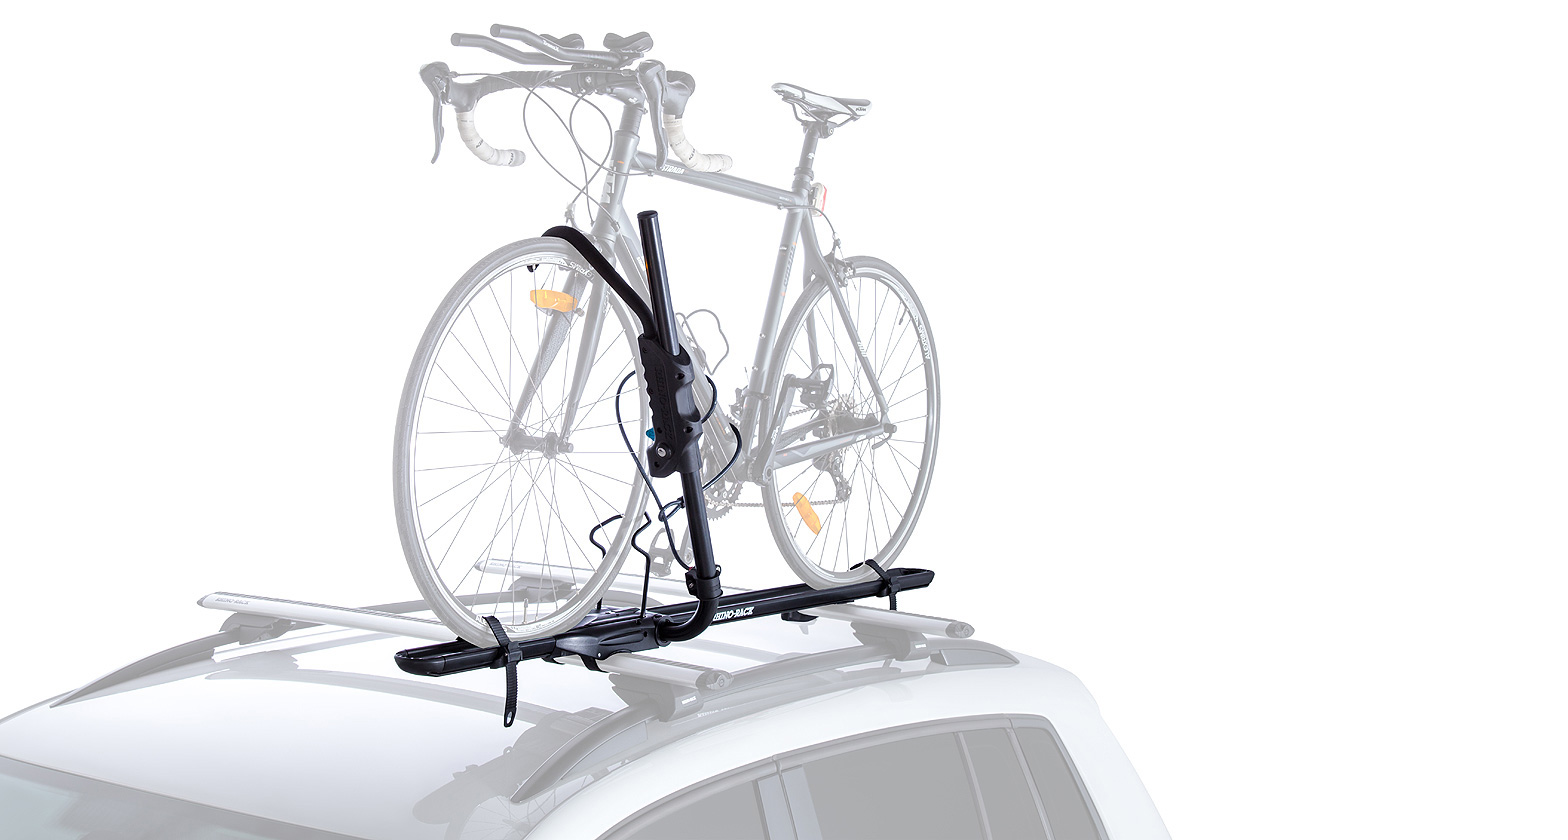 Rbc050 Hybrid Bike Carrier Rhino Rack